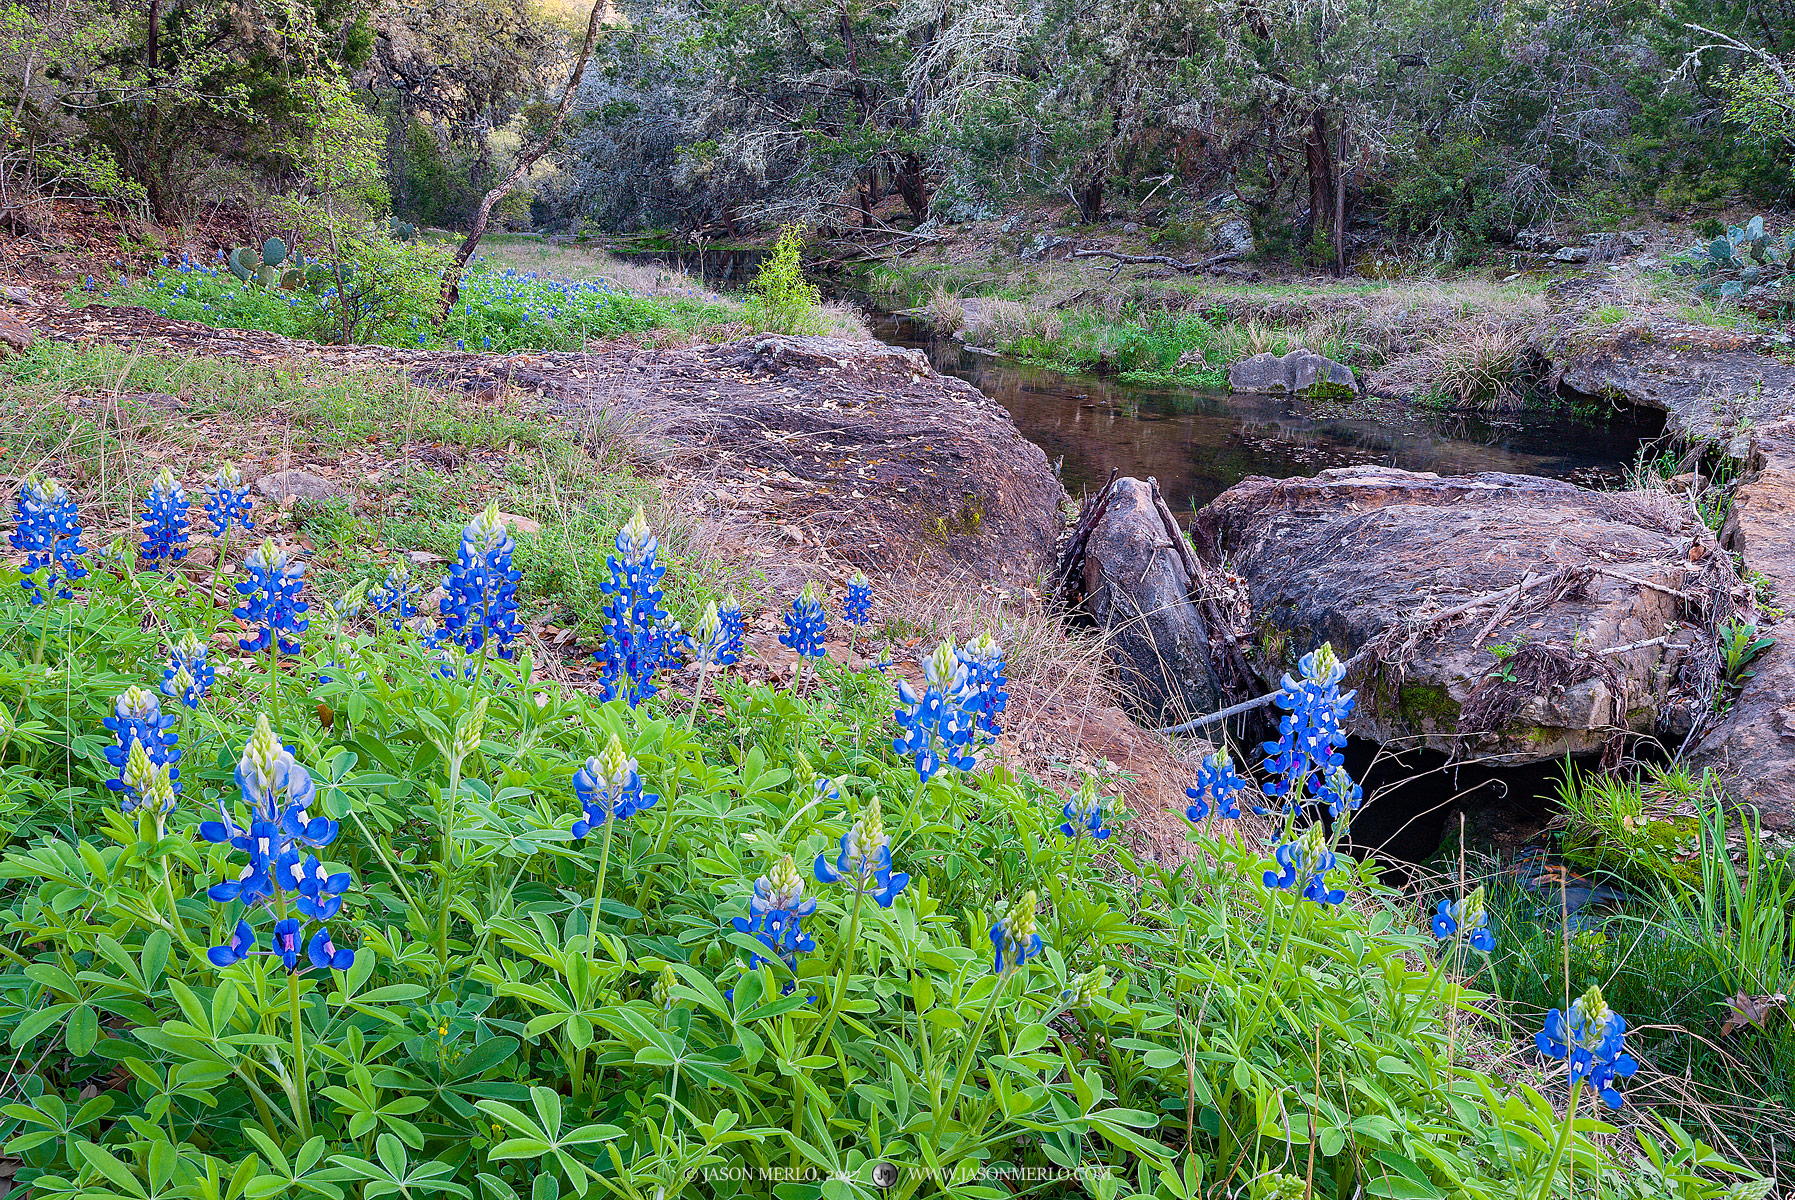 Texas Hill Country, Llano County, bluebonnets, Lupinus texensis, wildflowers, cedar, Juniperus ashei, creek, photo